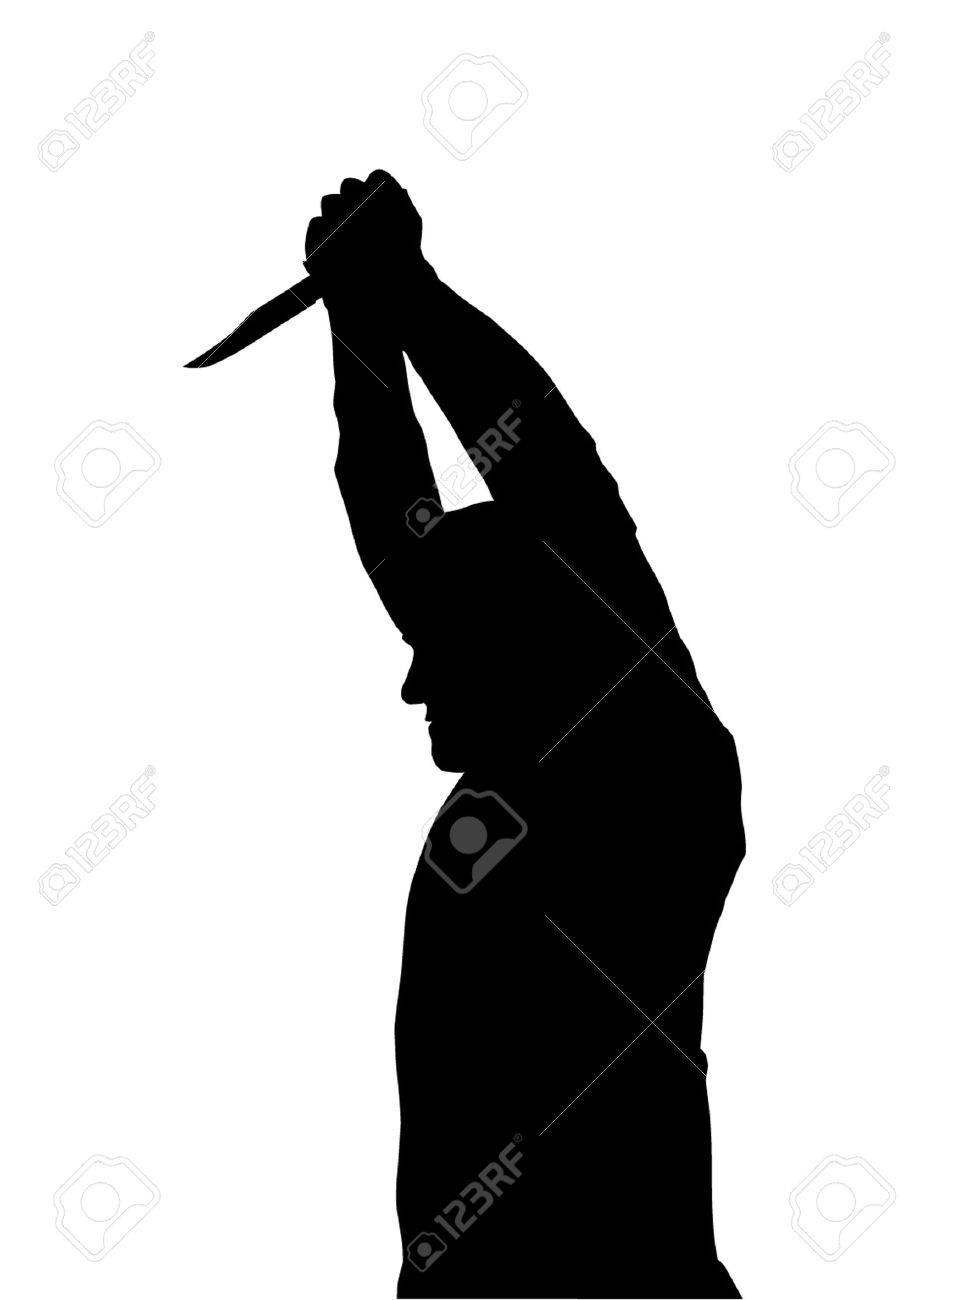 Horror Silhouette of Man with Knife Stabbing Victim Stock Vector - 12480128